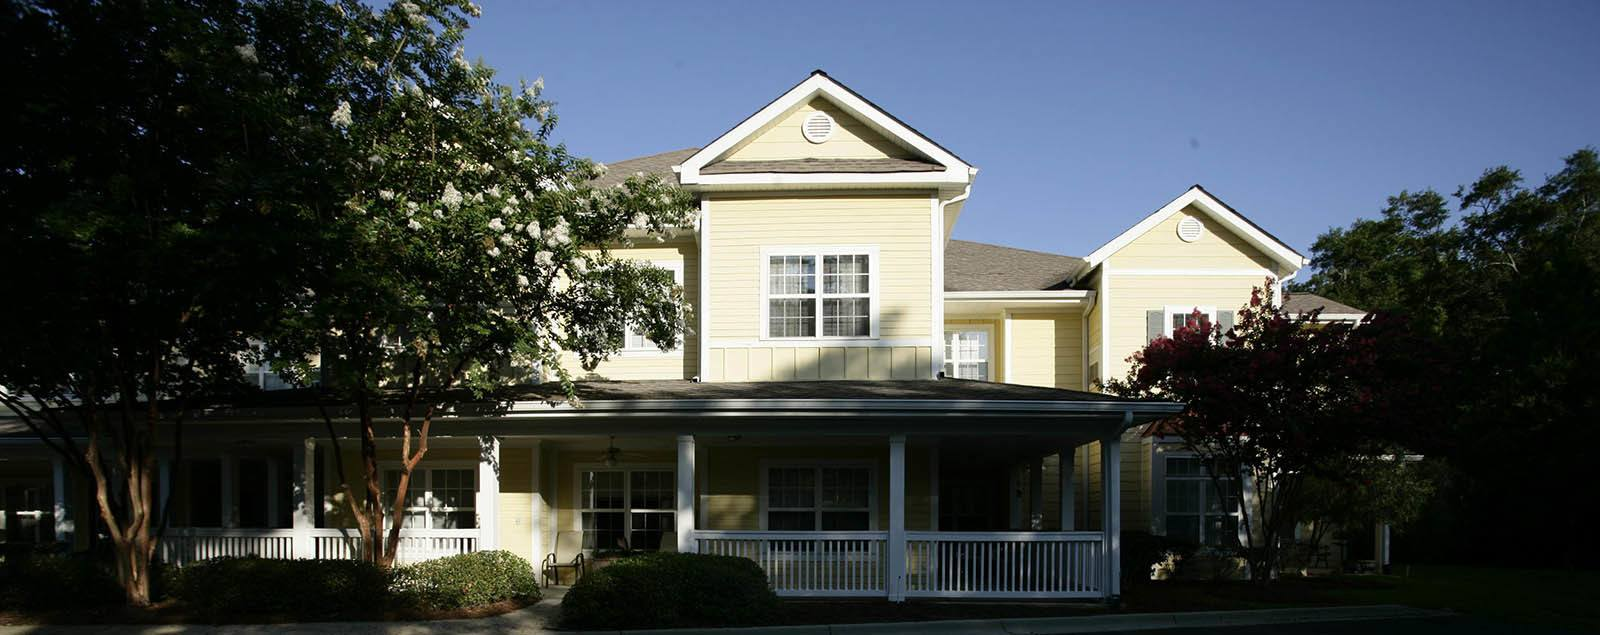 Assisted senior living in Tallahassee